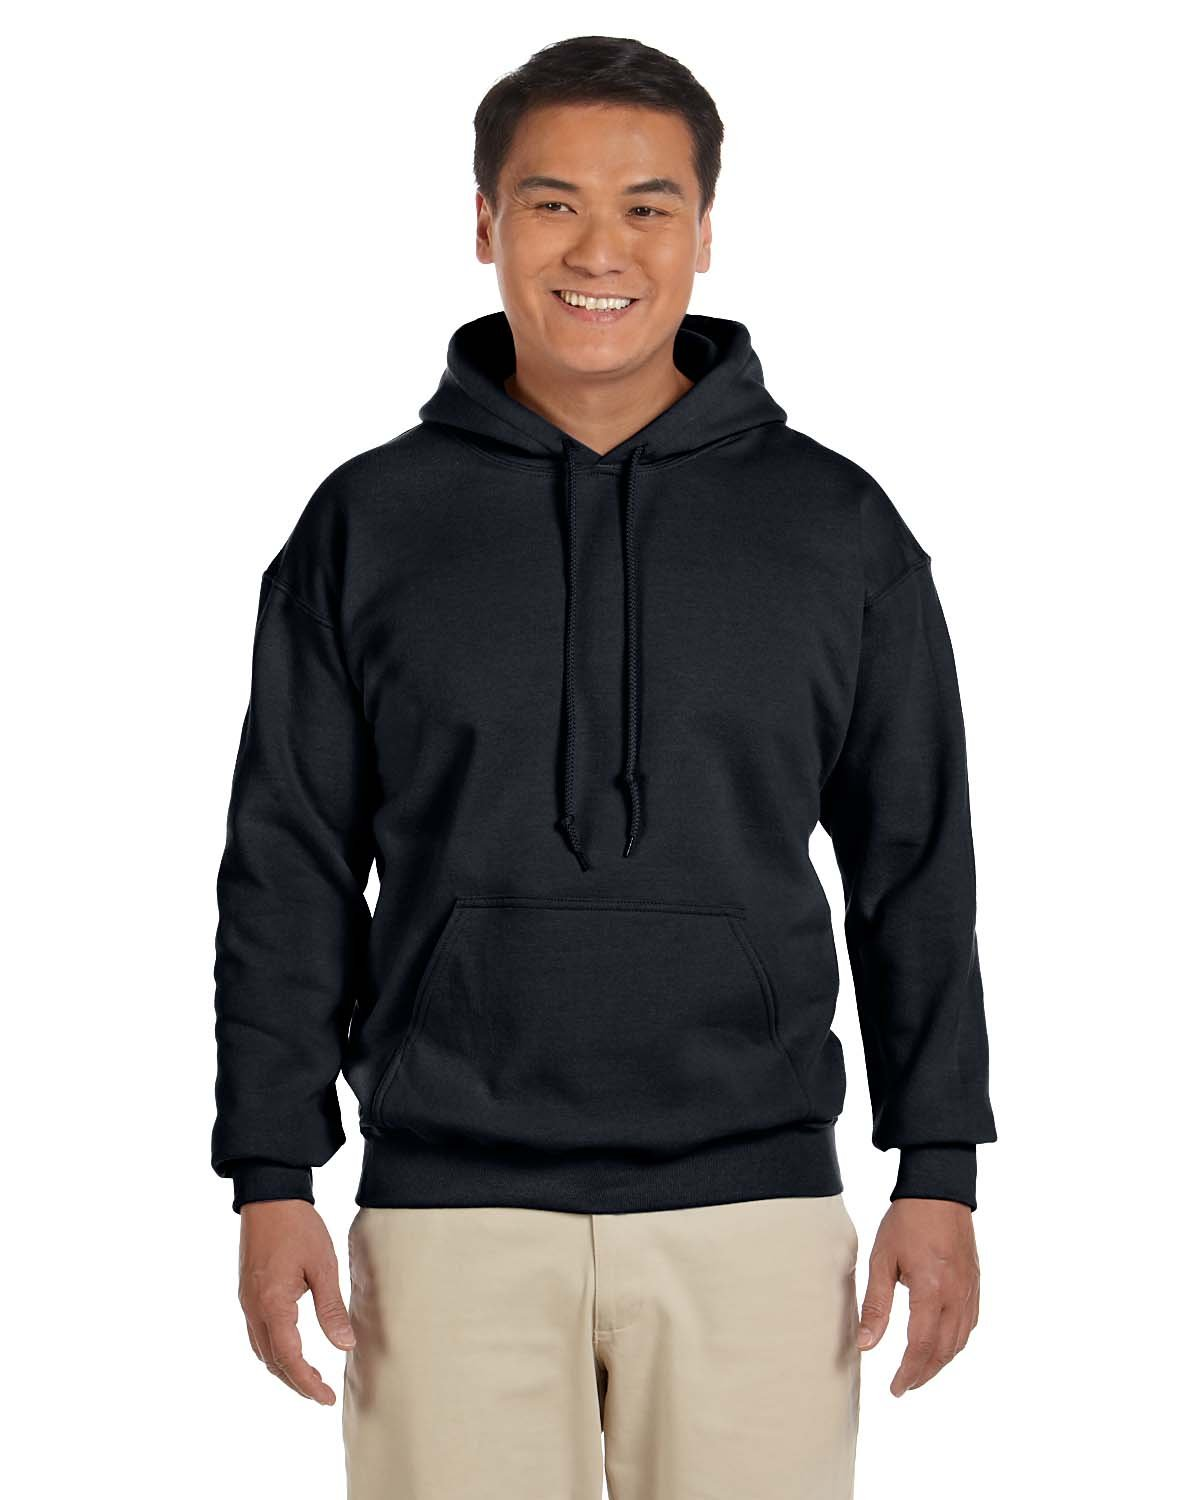 Gildan 18500 - Heavy Blend™ Hooded Sweatshirt | Wordans USA